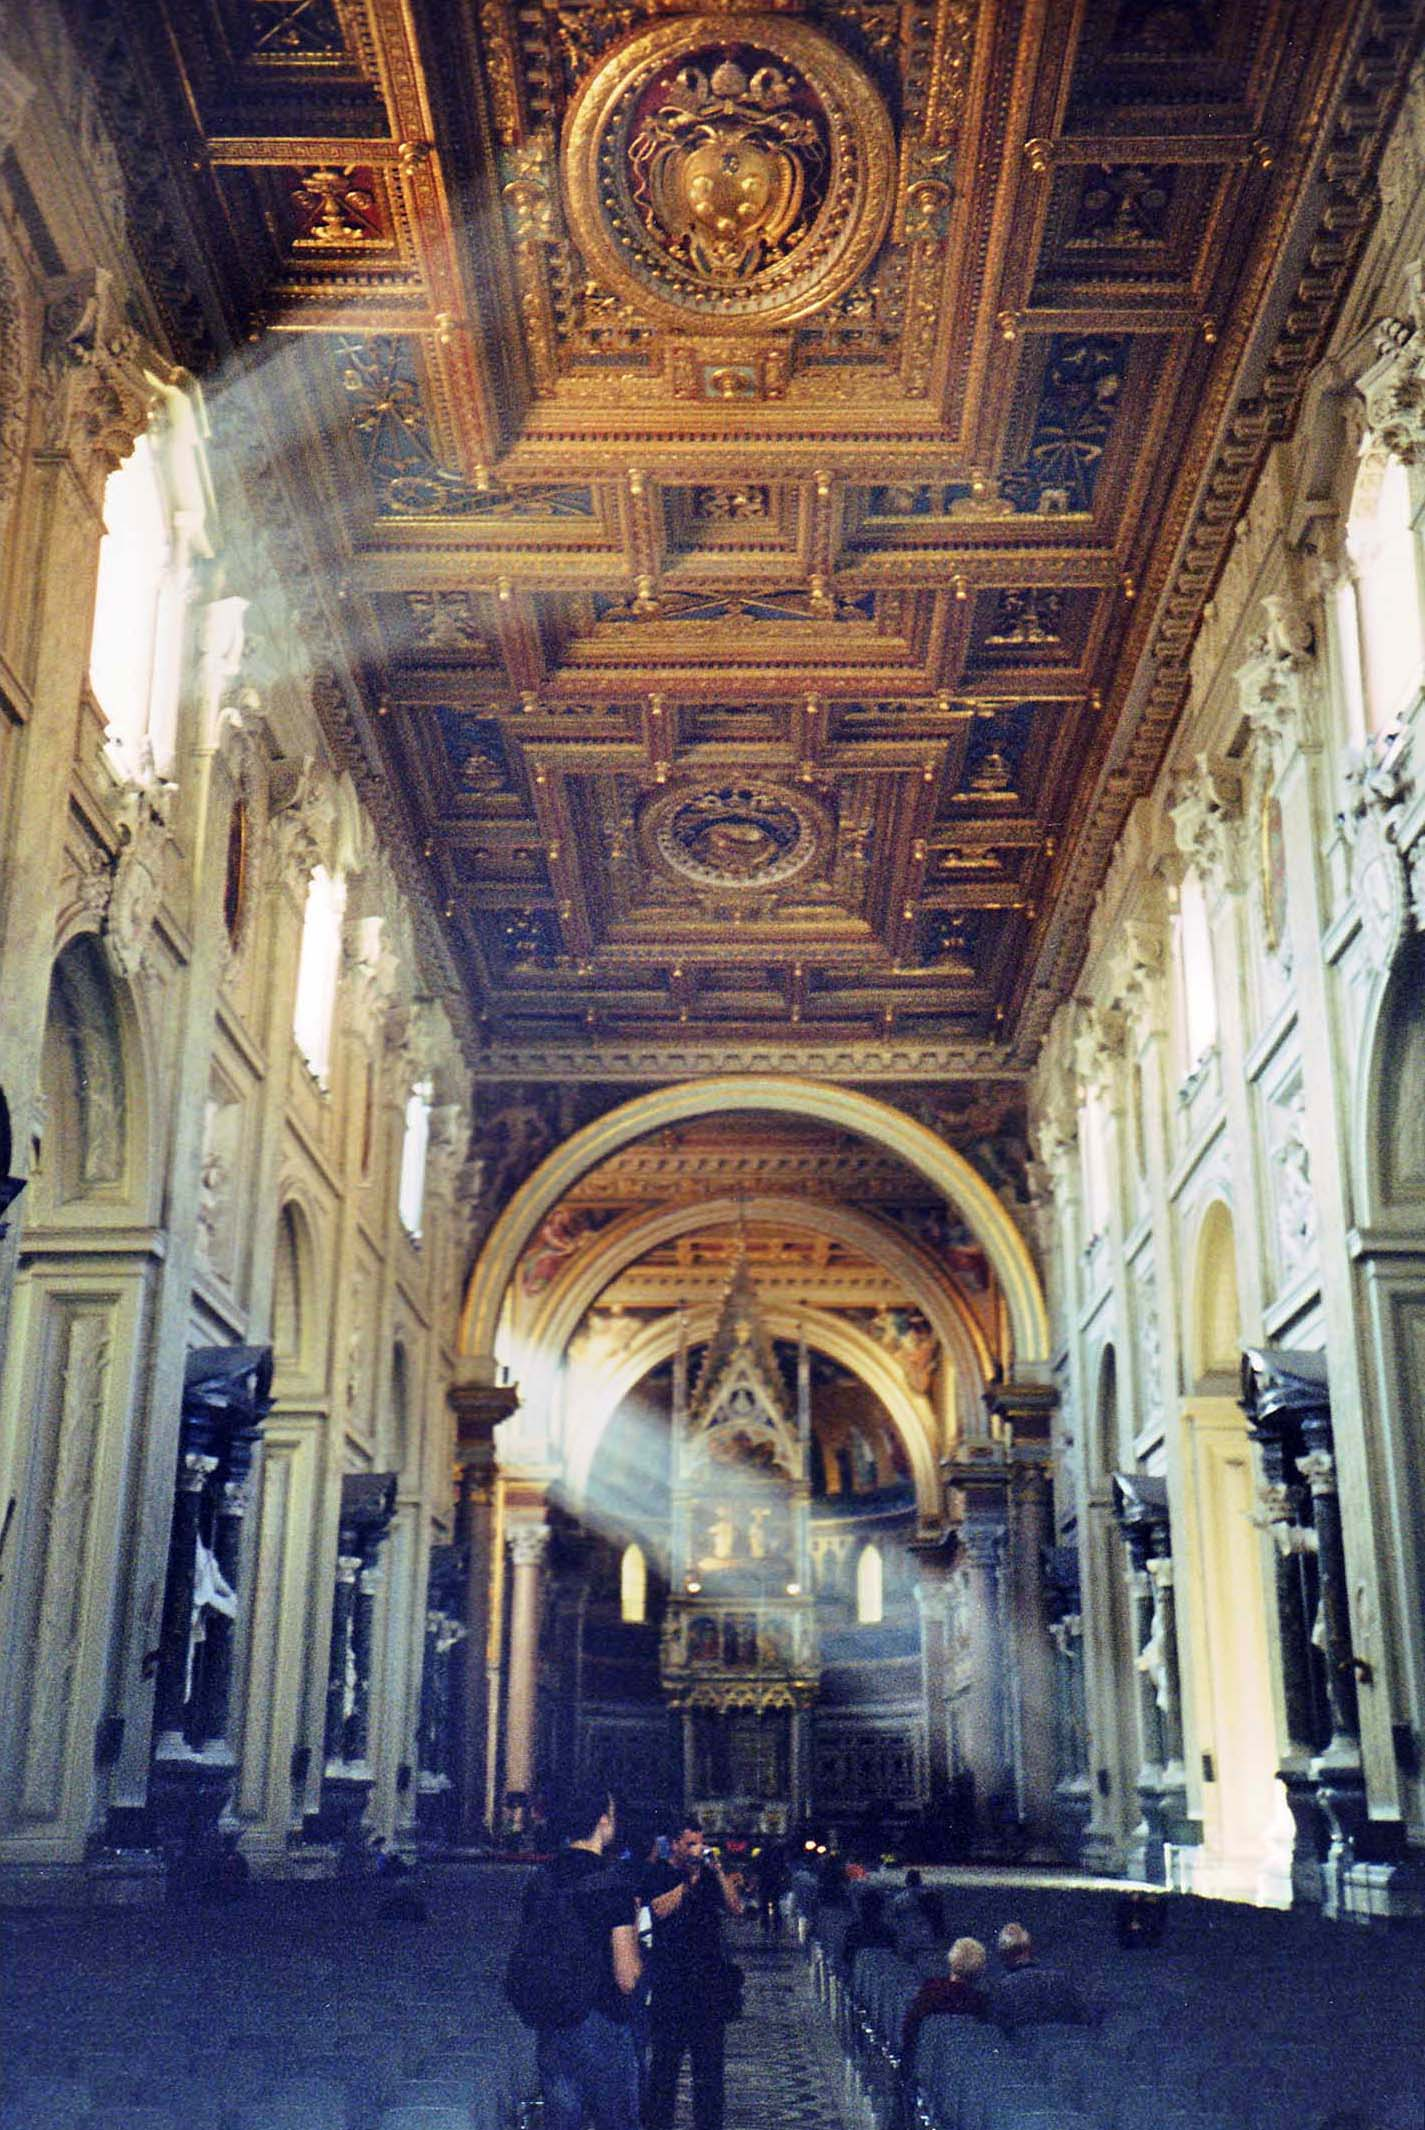 The nave of San Giovanni in Laterano